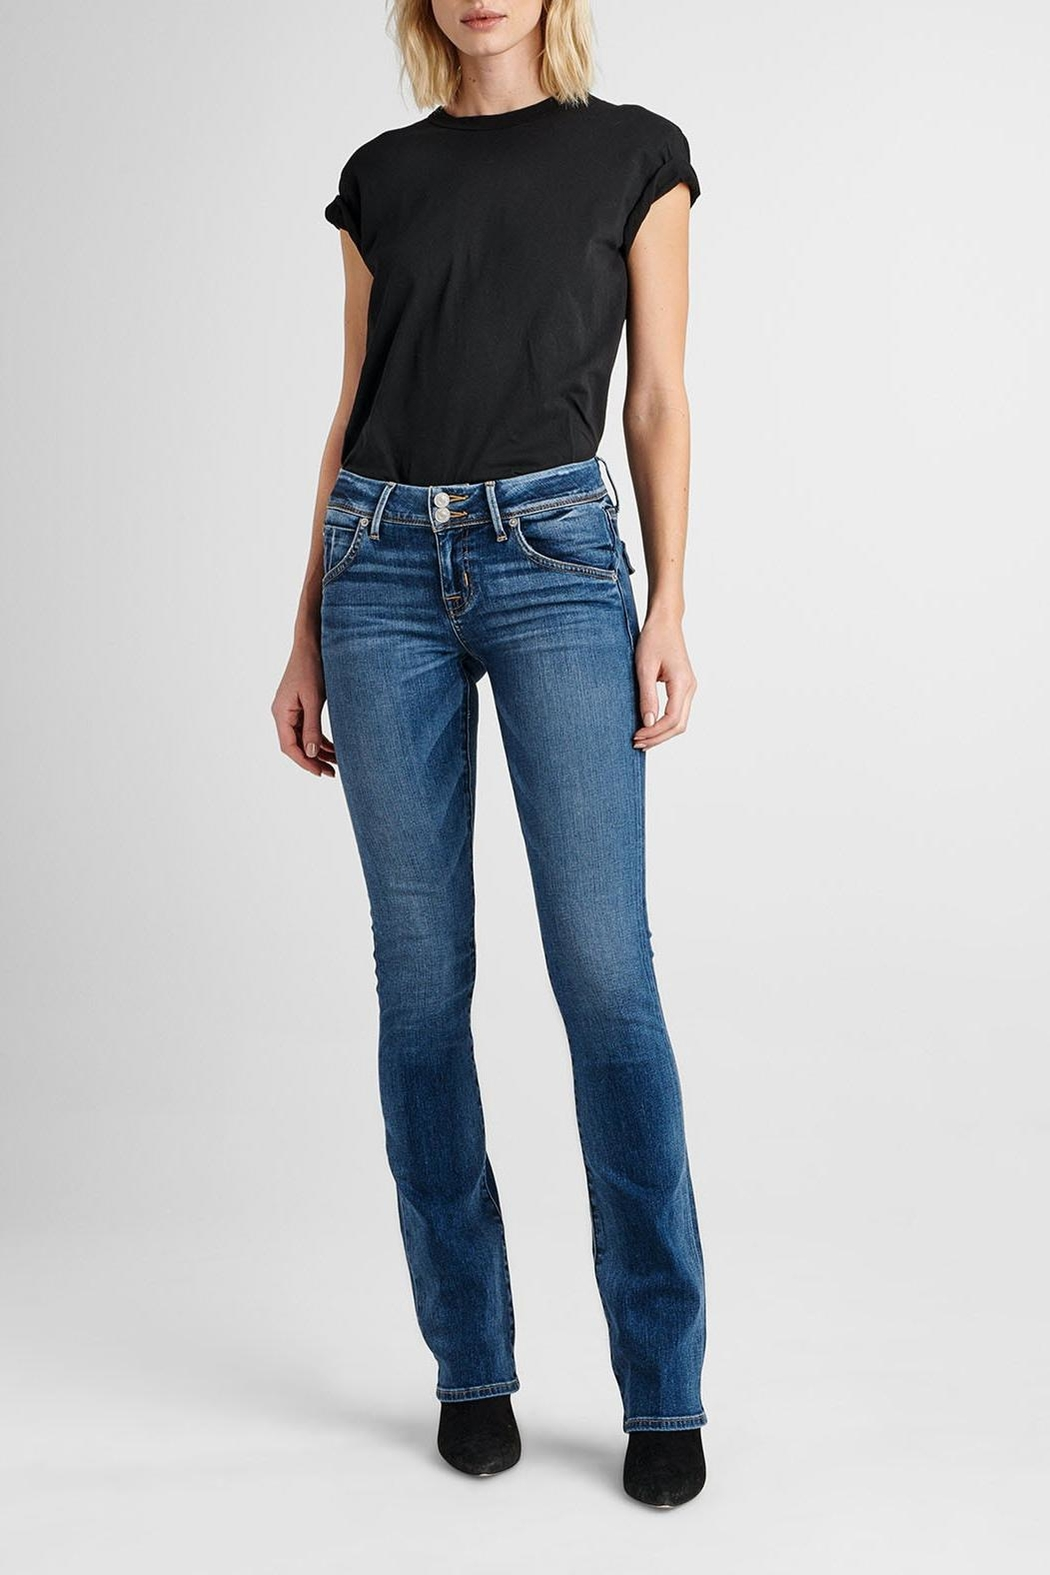 Hudson Jeans Beth Baby-Bootcut Impala - Front Full Image